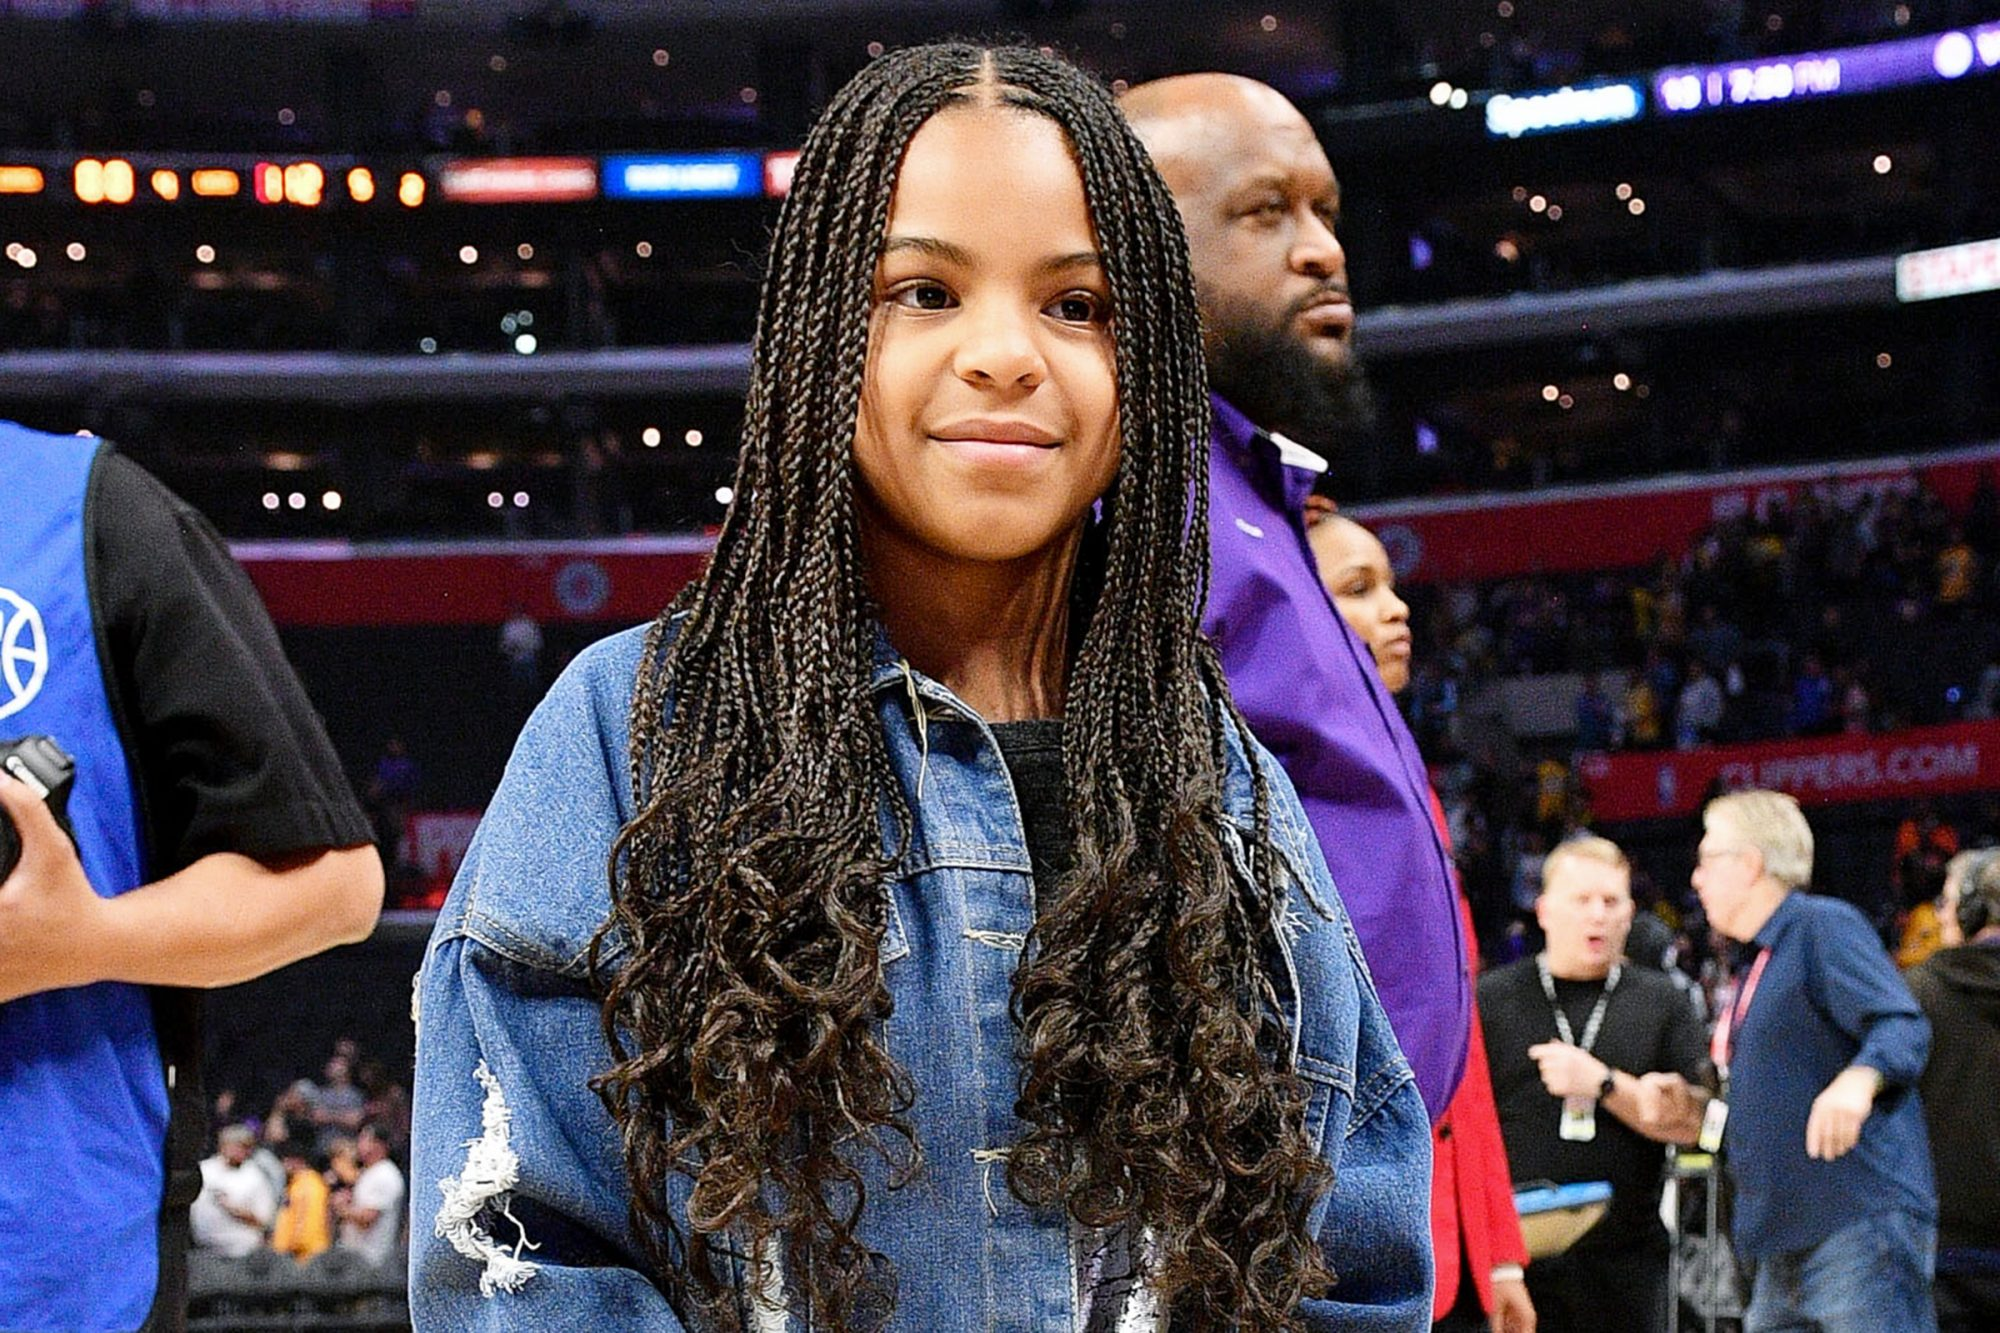 Beyonce's daughter Blue Ivy Carter narrates Hair Love